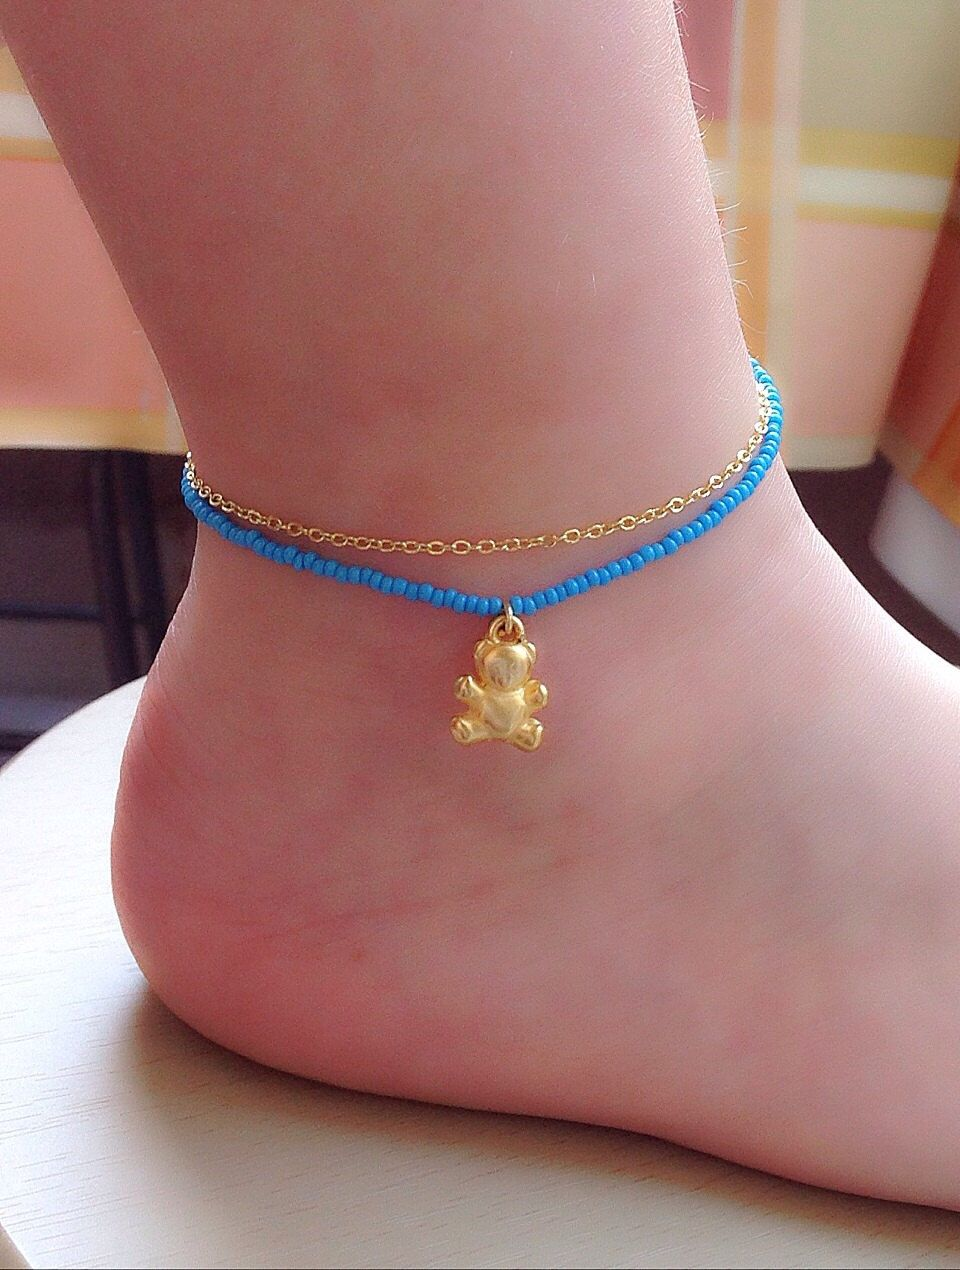 bracelet black s product zoom titanium anklet boy ankle loading beadifulbaby dv personalized toddler baby